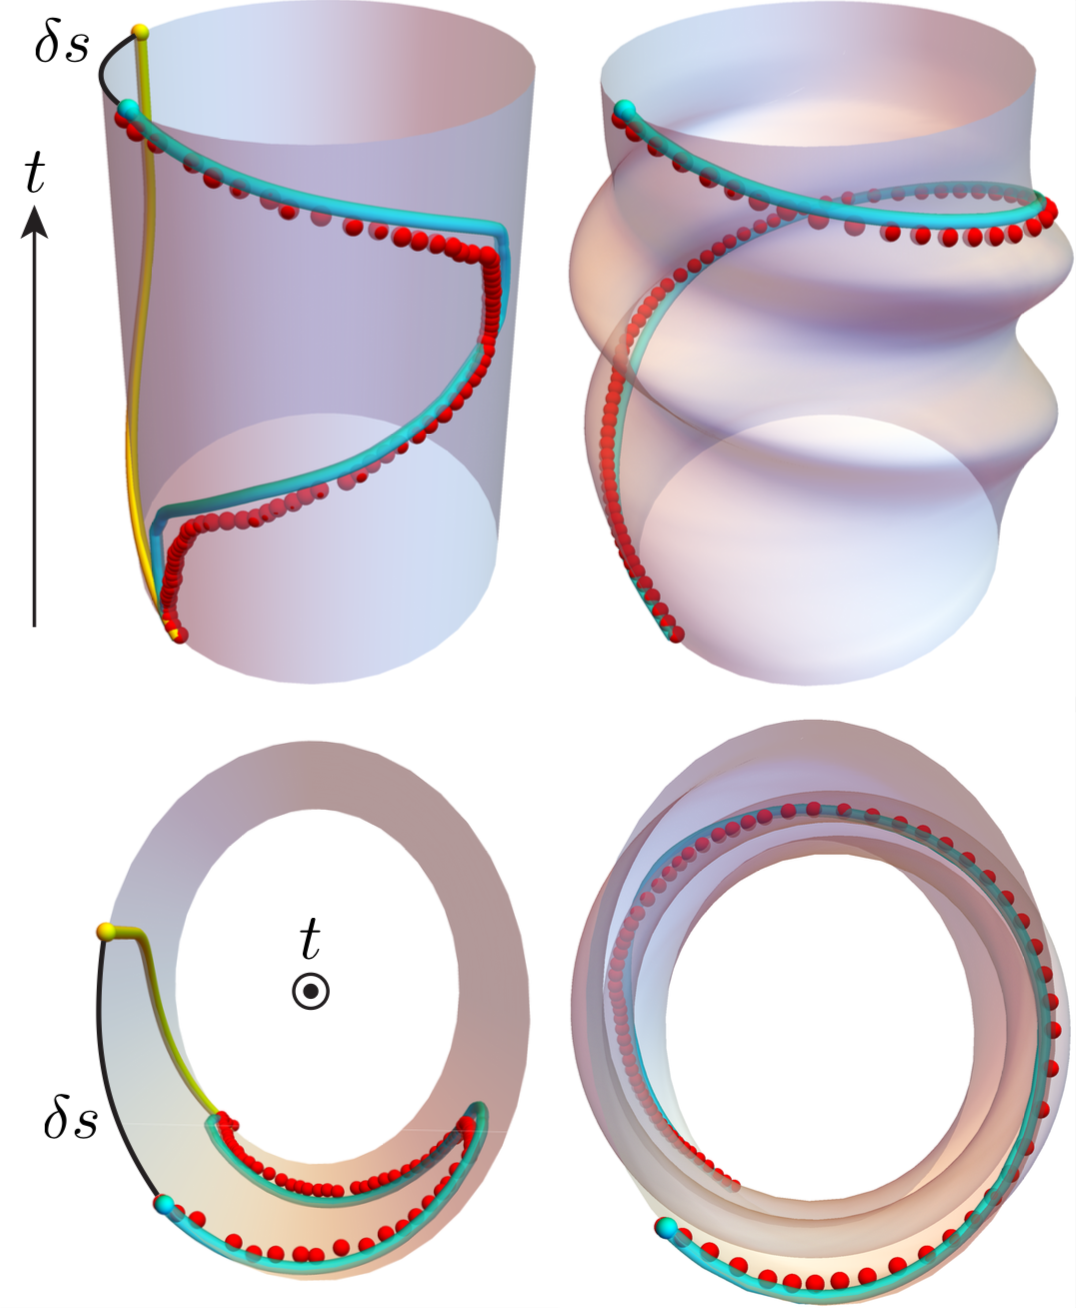 Spacetime diagrams of a bead sliding on spinning hoop in the hoop (left) and lab (right) frames. Red spheres are experiment, cyan tubes are simulation, yellow tubes numerically extrapolates bead sliding in the absence of hoop spinning, and black arcs are the generalized Hannay's shift.